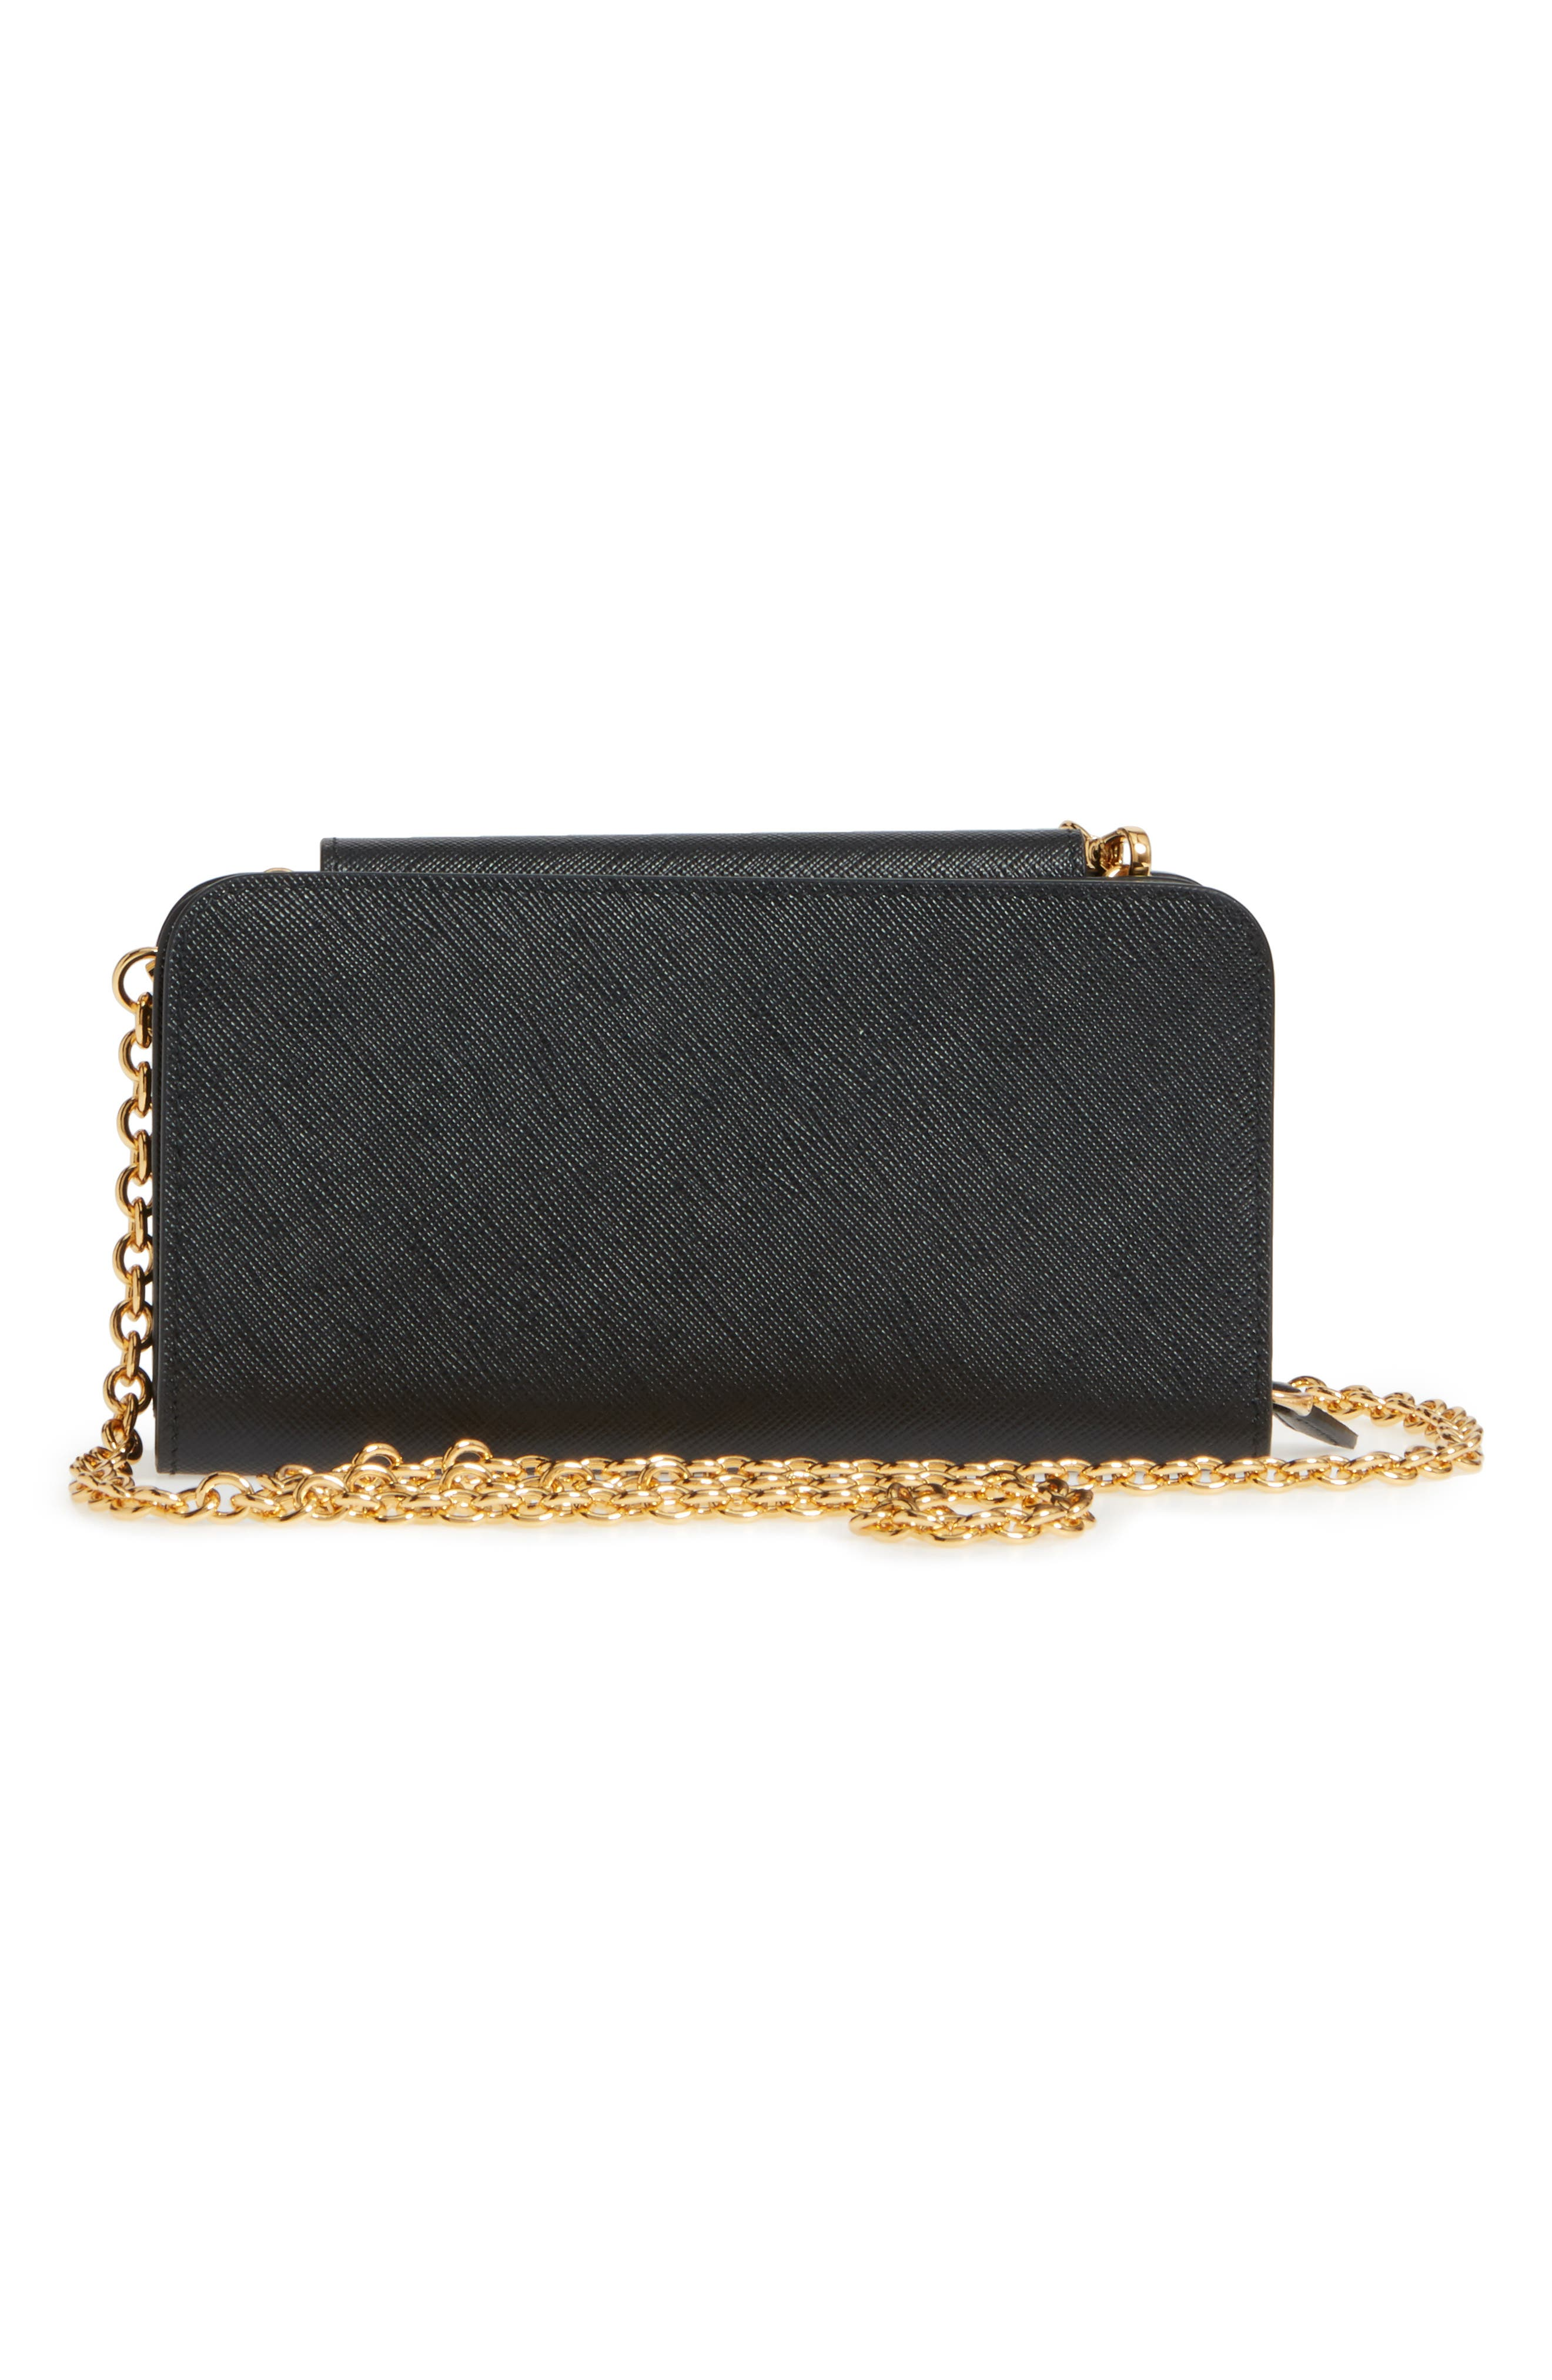 Saffiano Leather Metal Oral Phone Wallet on a Chain,                             Alternate thumbnail 4, color,                             Nero